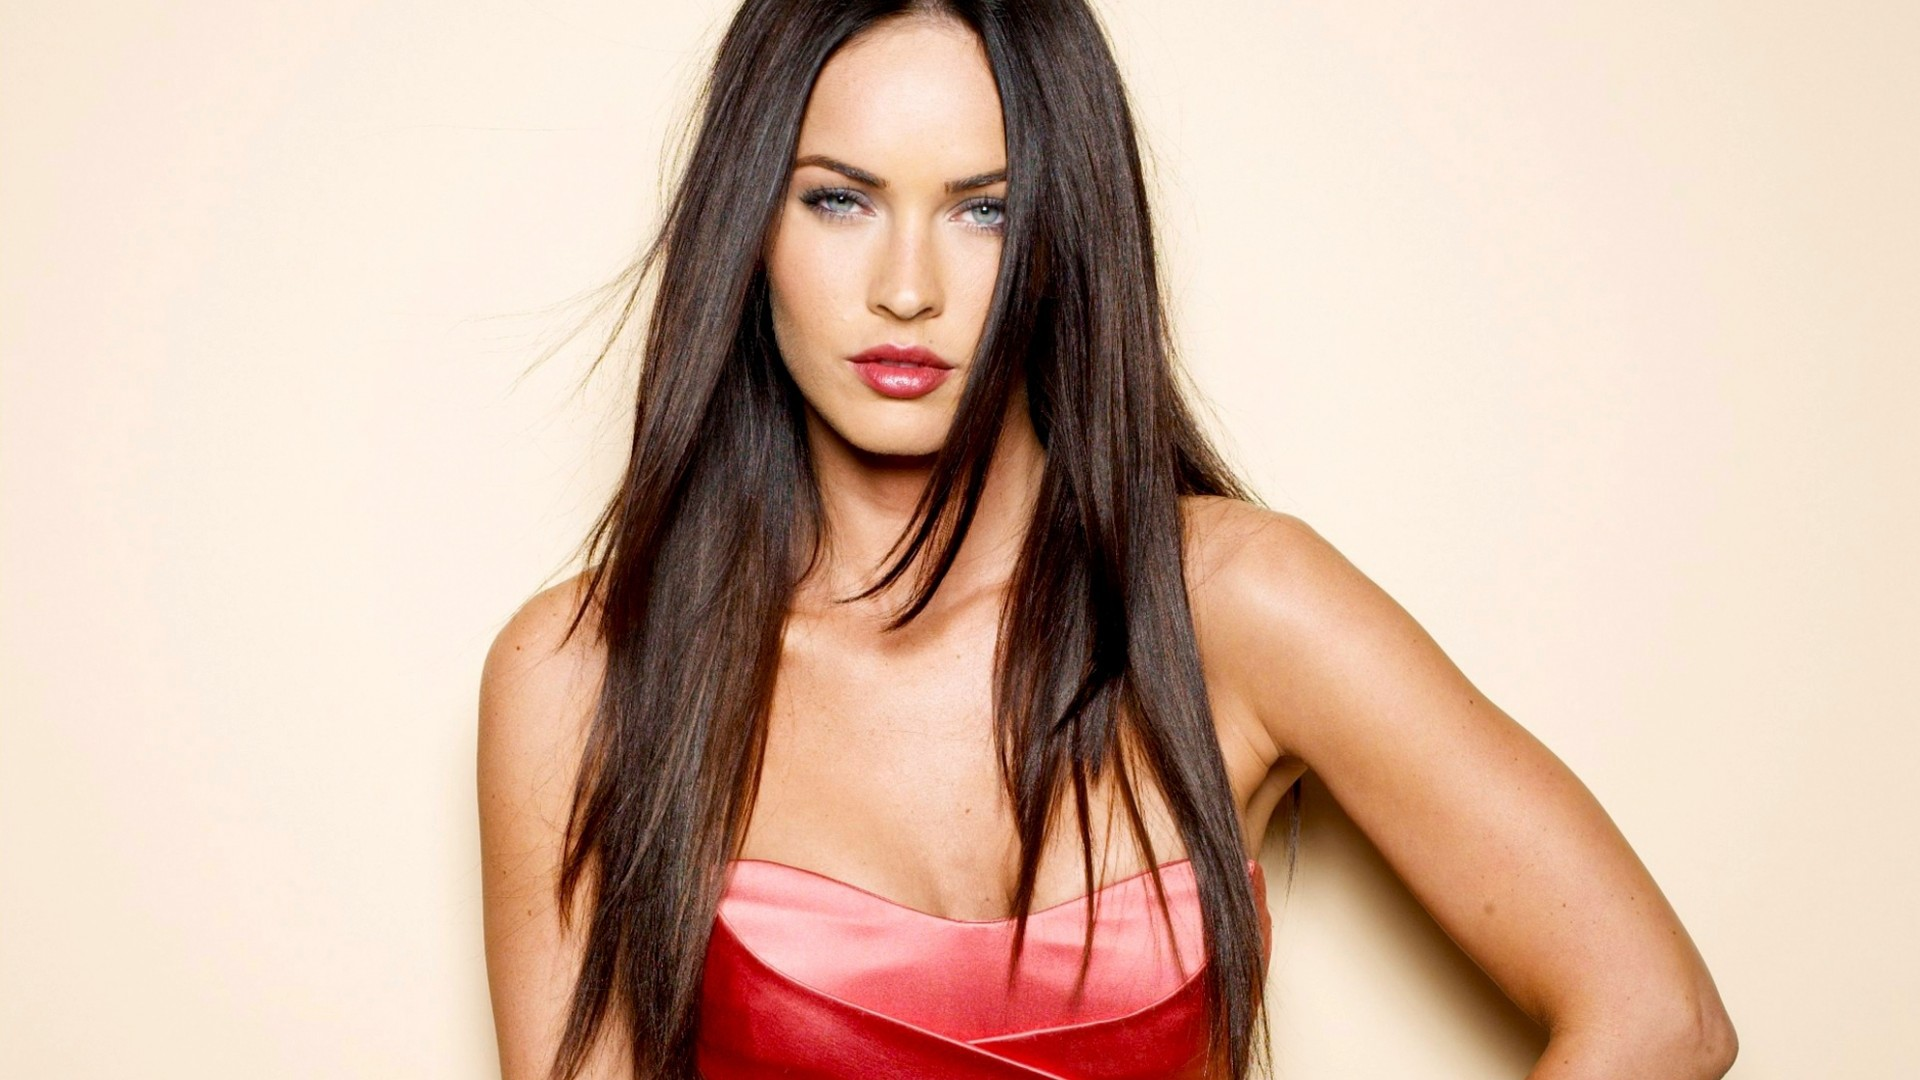 Megan Fox Download Free Backgrounds HD